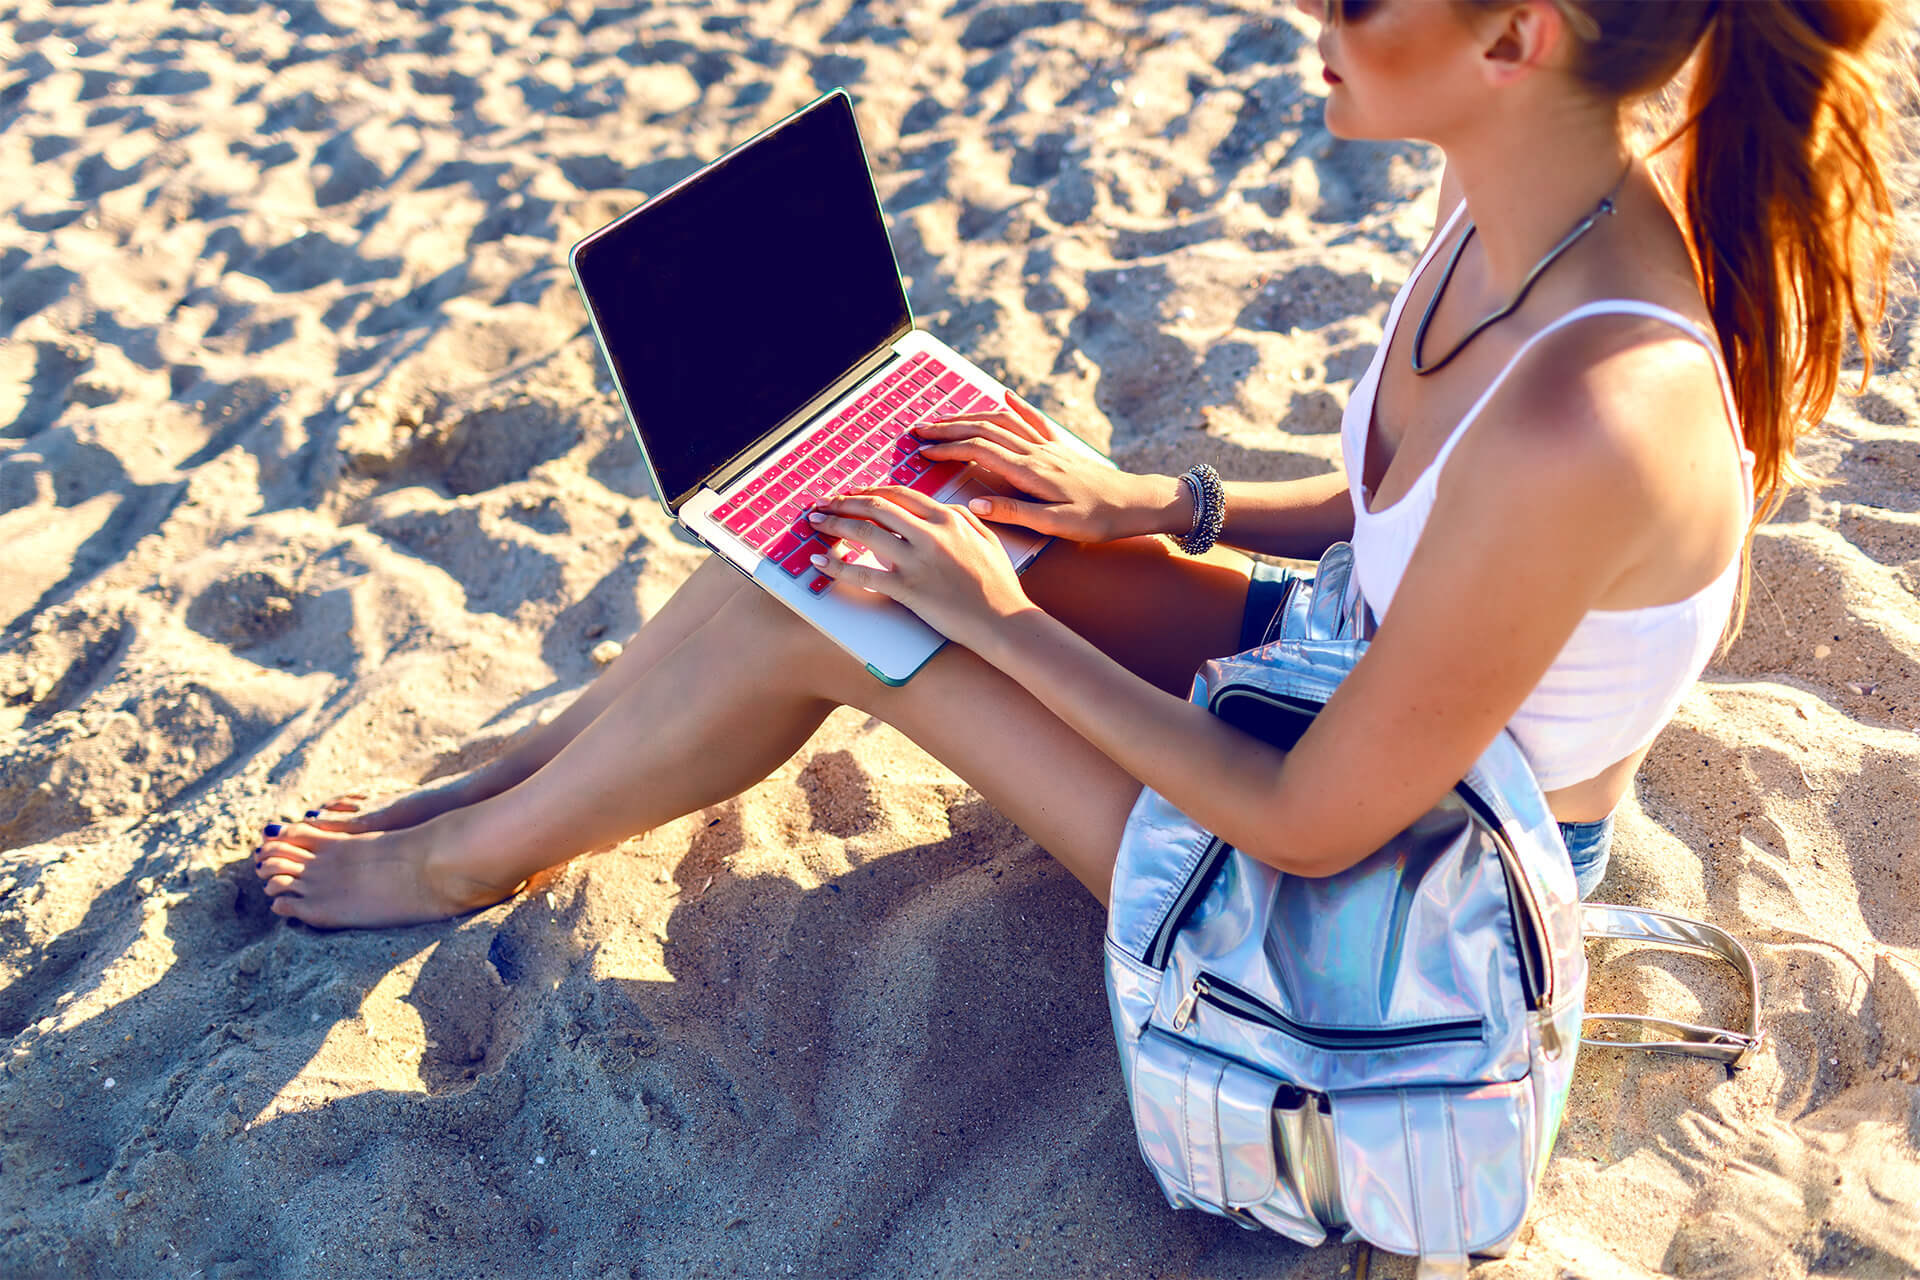 Greece becoming a paradise for digital nomads in 2021